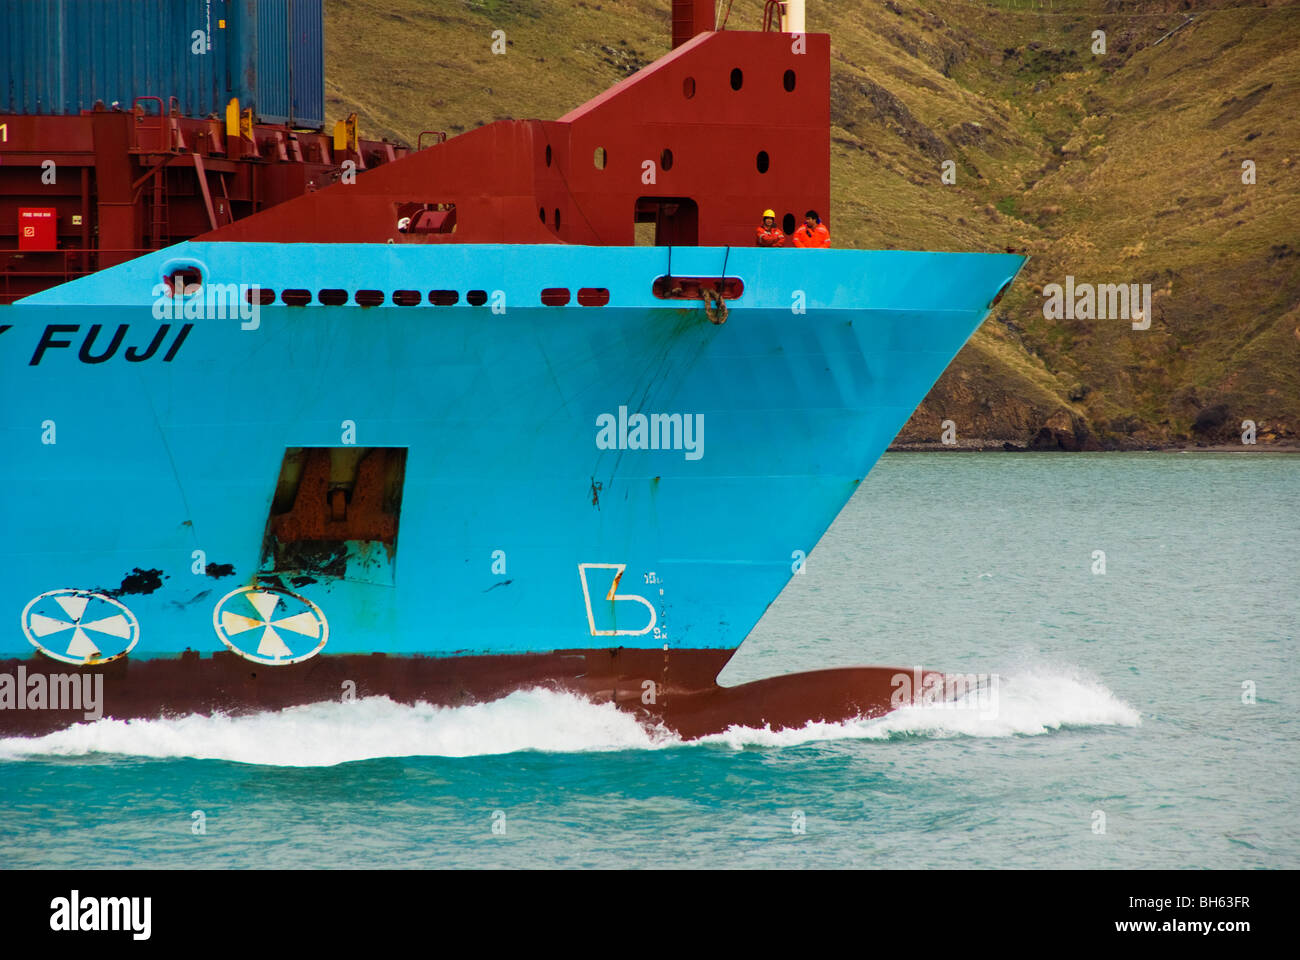 Bulbous bow and bow wave of a container ship is it moves through the water. - Stock Image